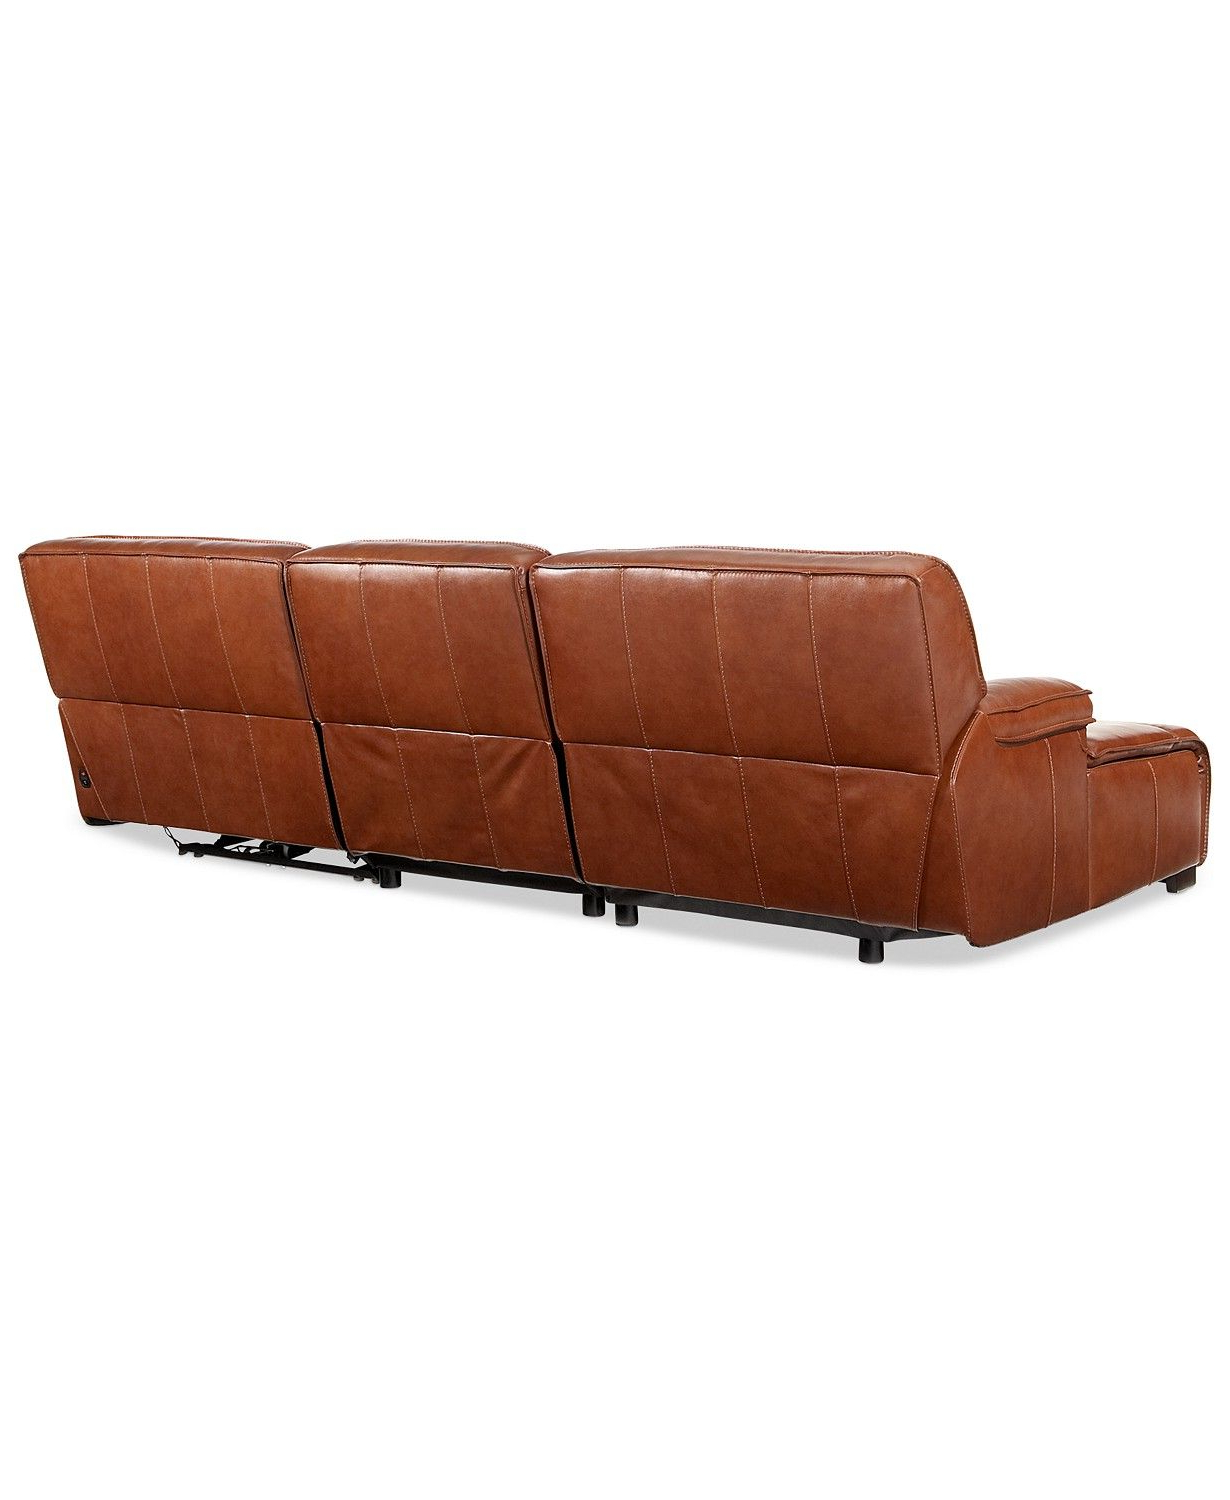 Newest Furniture Beckett 3 Pc Leather Sectional Sofa With Chaise Inside 3pc Miles Leather Sectional Sofas With Chaise (View 8 of 20)